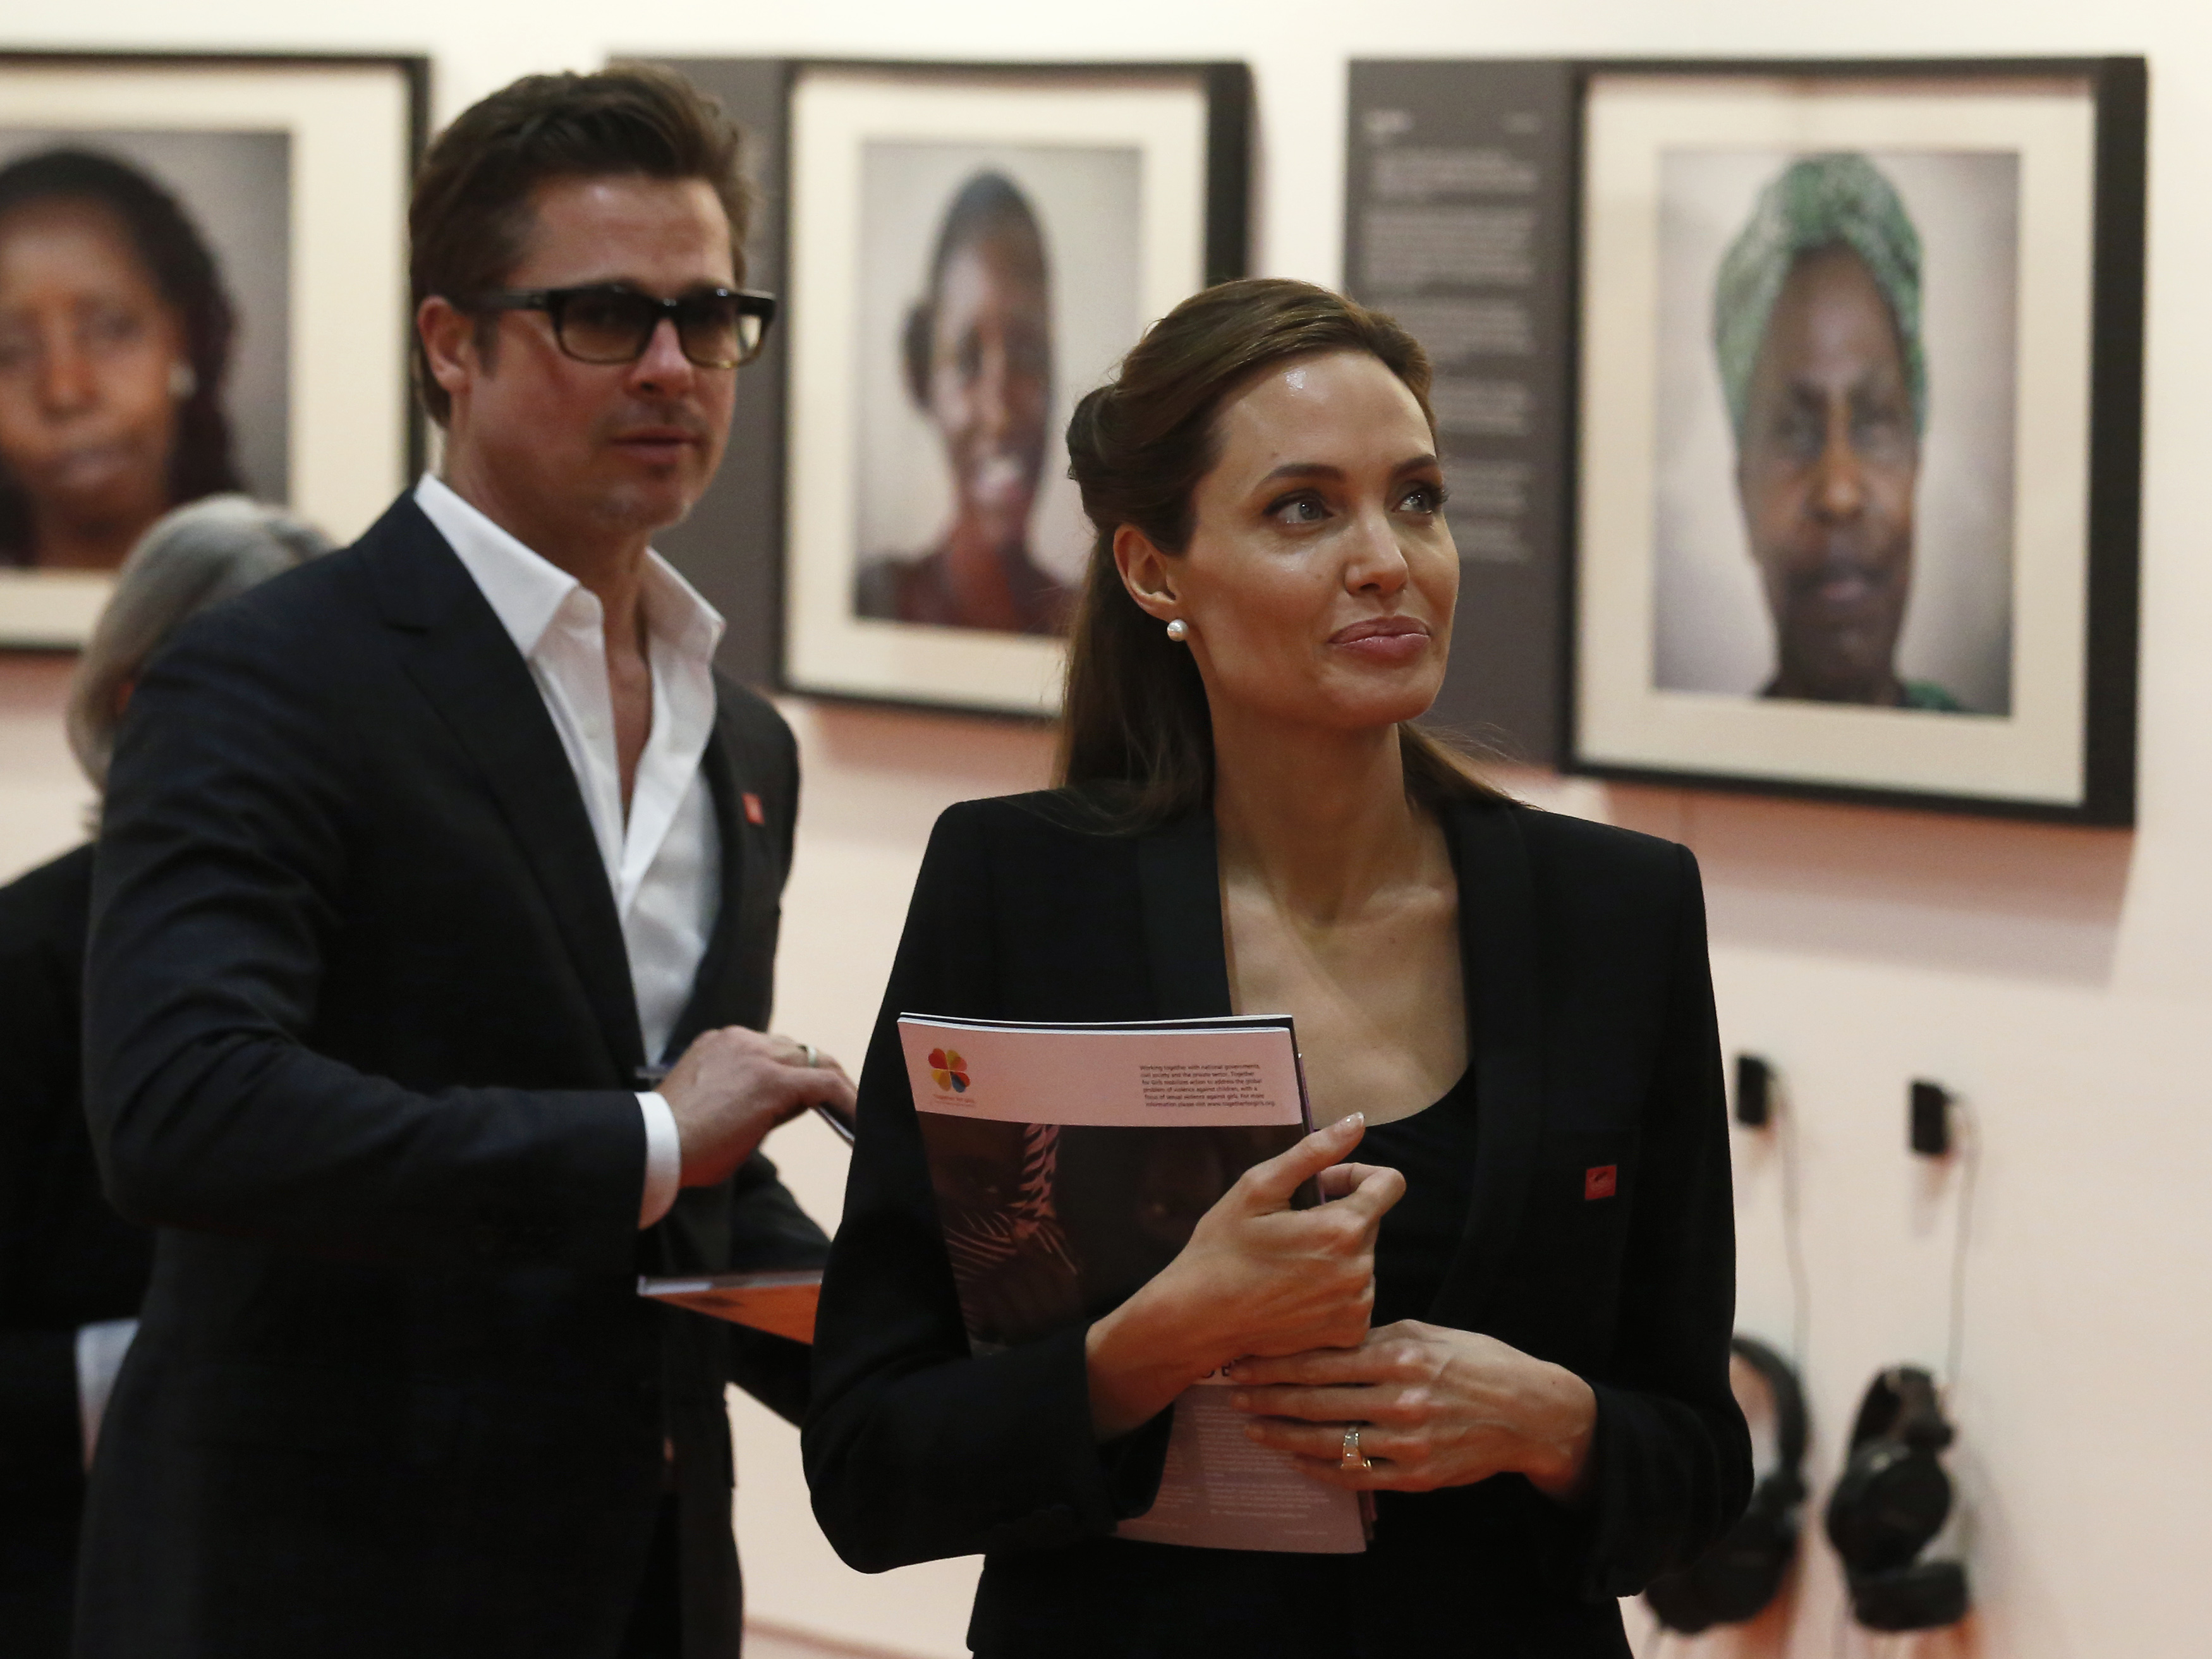 Actress and campaigner Angelina Jolie and her partner, actor Brad Pitt look at photographs at a fringe event of a summit to end sexual violence in conflict at the Excel centre in London